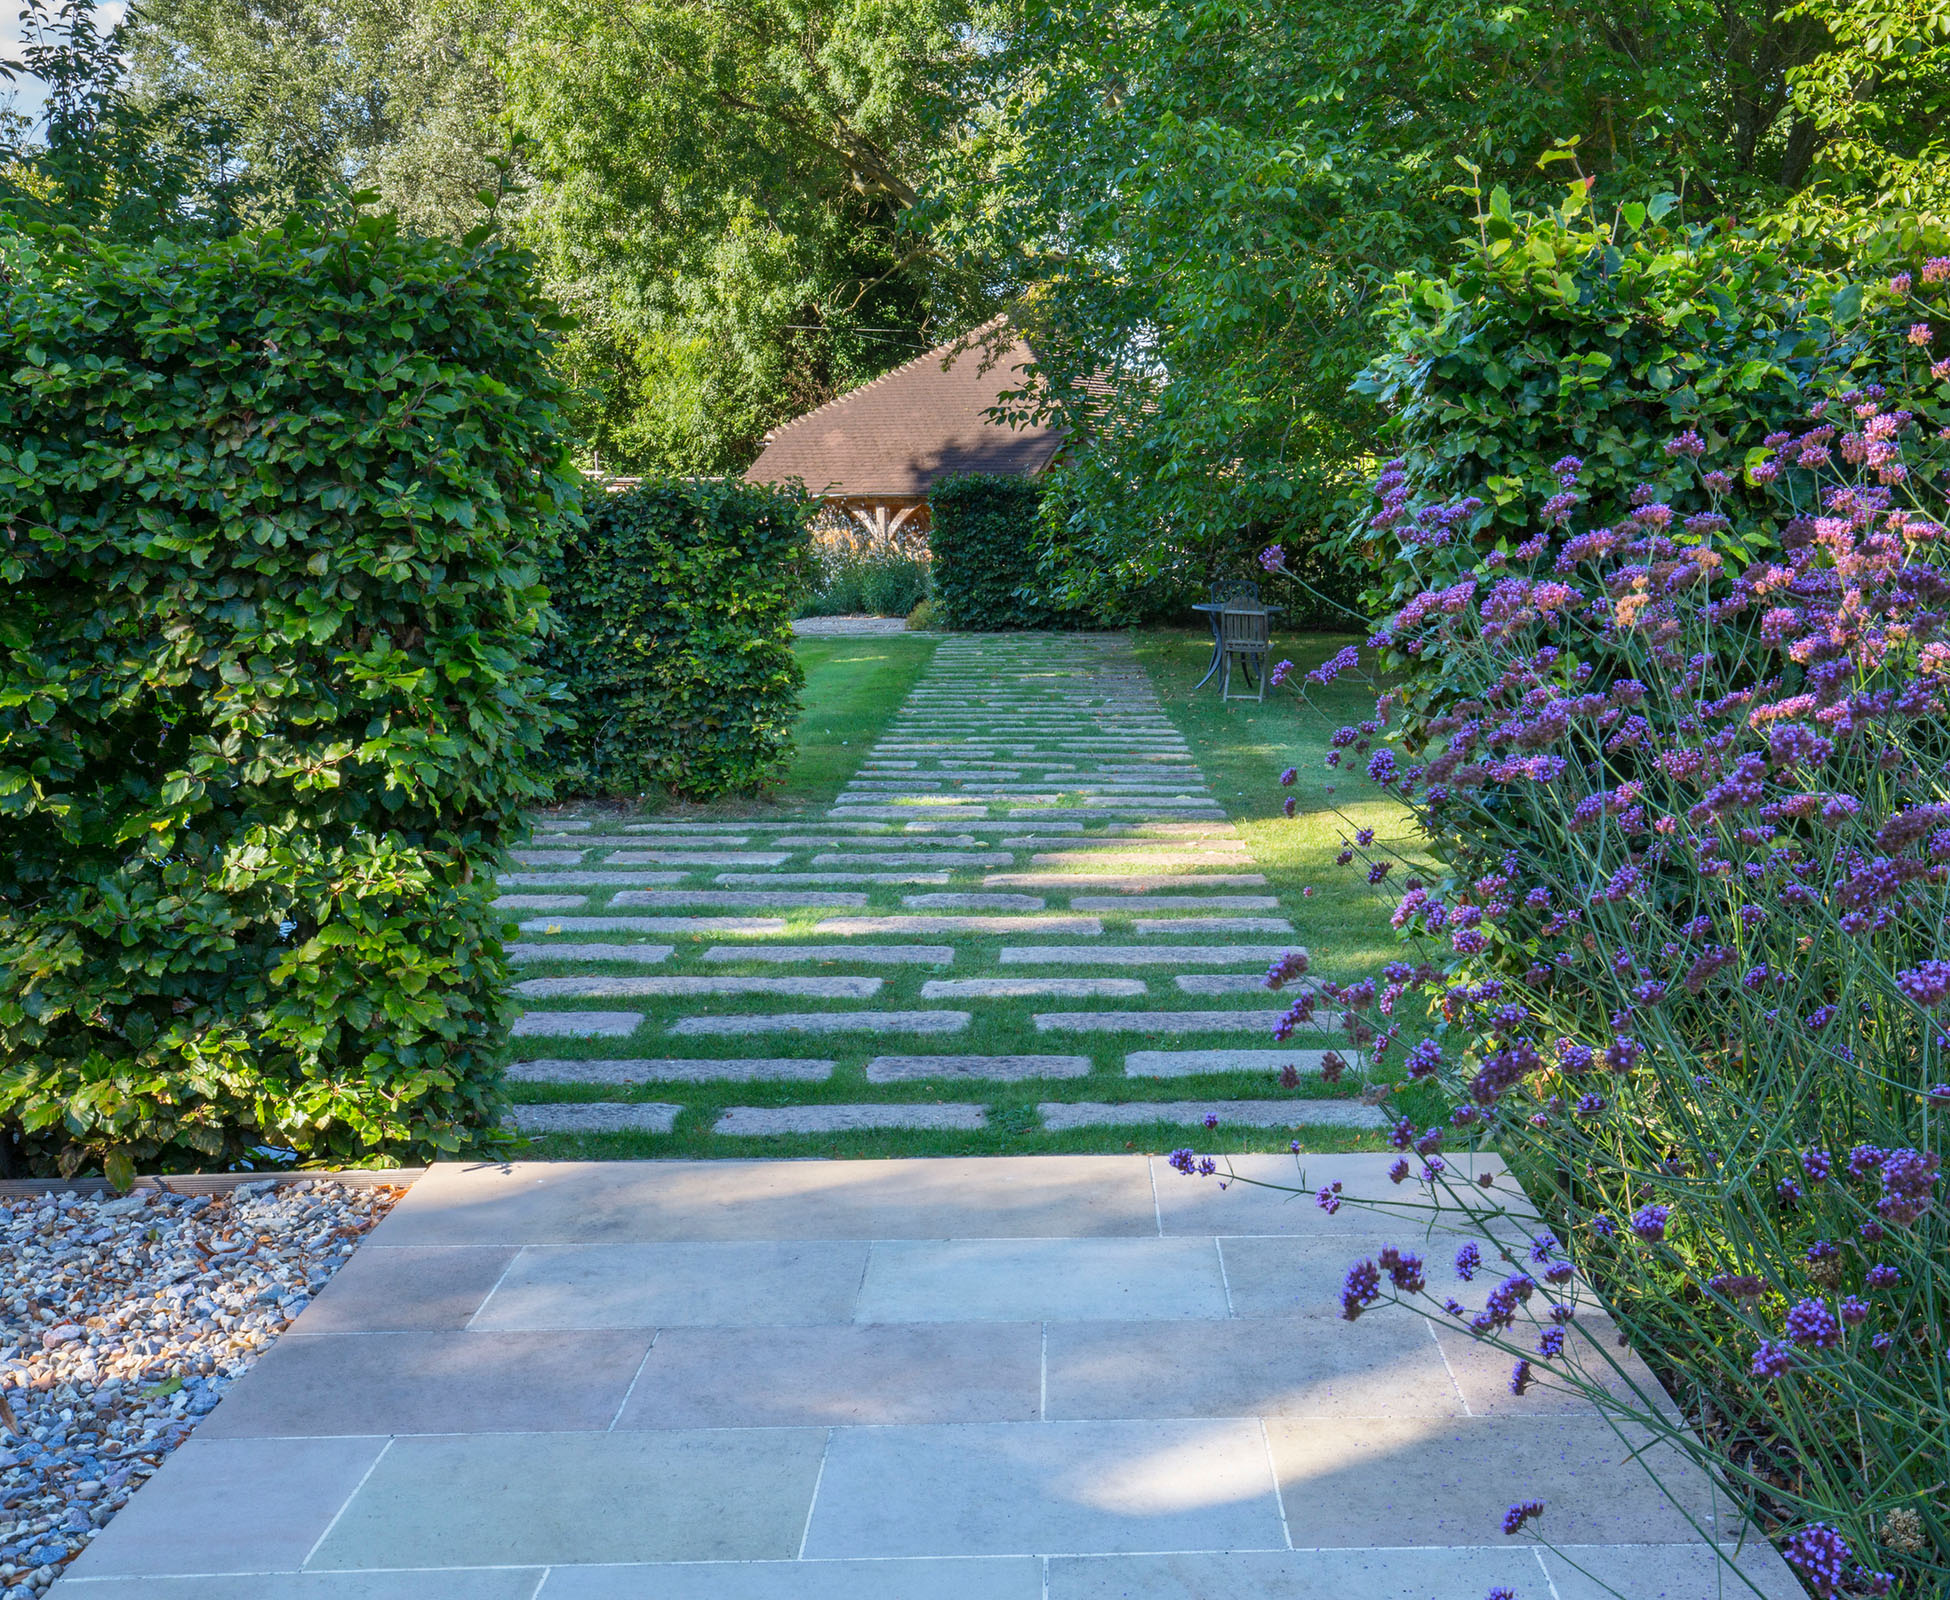 A step down from the hardwood deck onto the walking path leads to the lawn and the garage at the rear of this Richmond garden. The tall beech hedges break up the space, giving a rhythm to the planting.